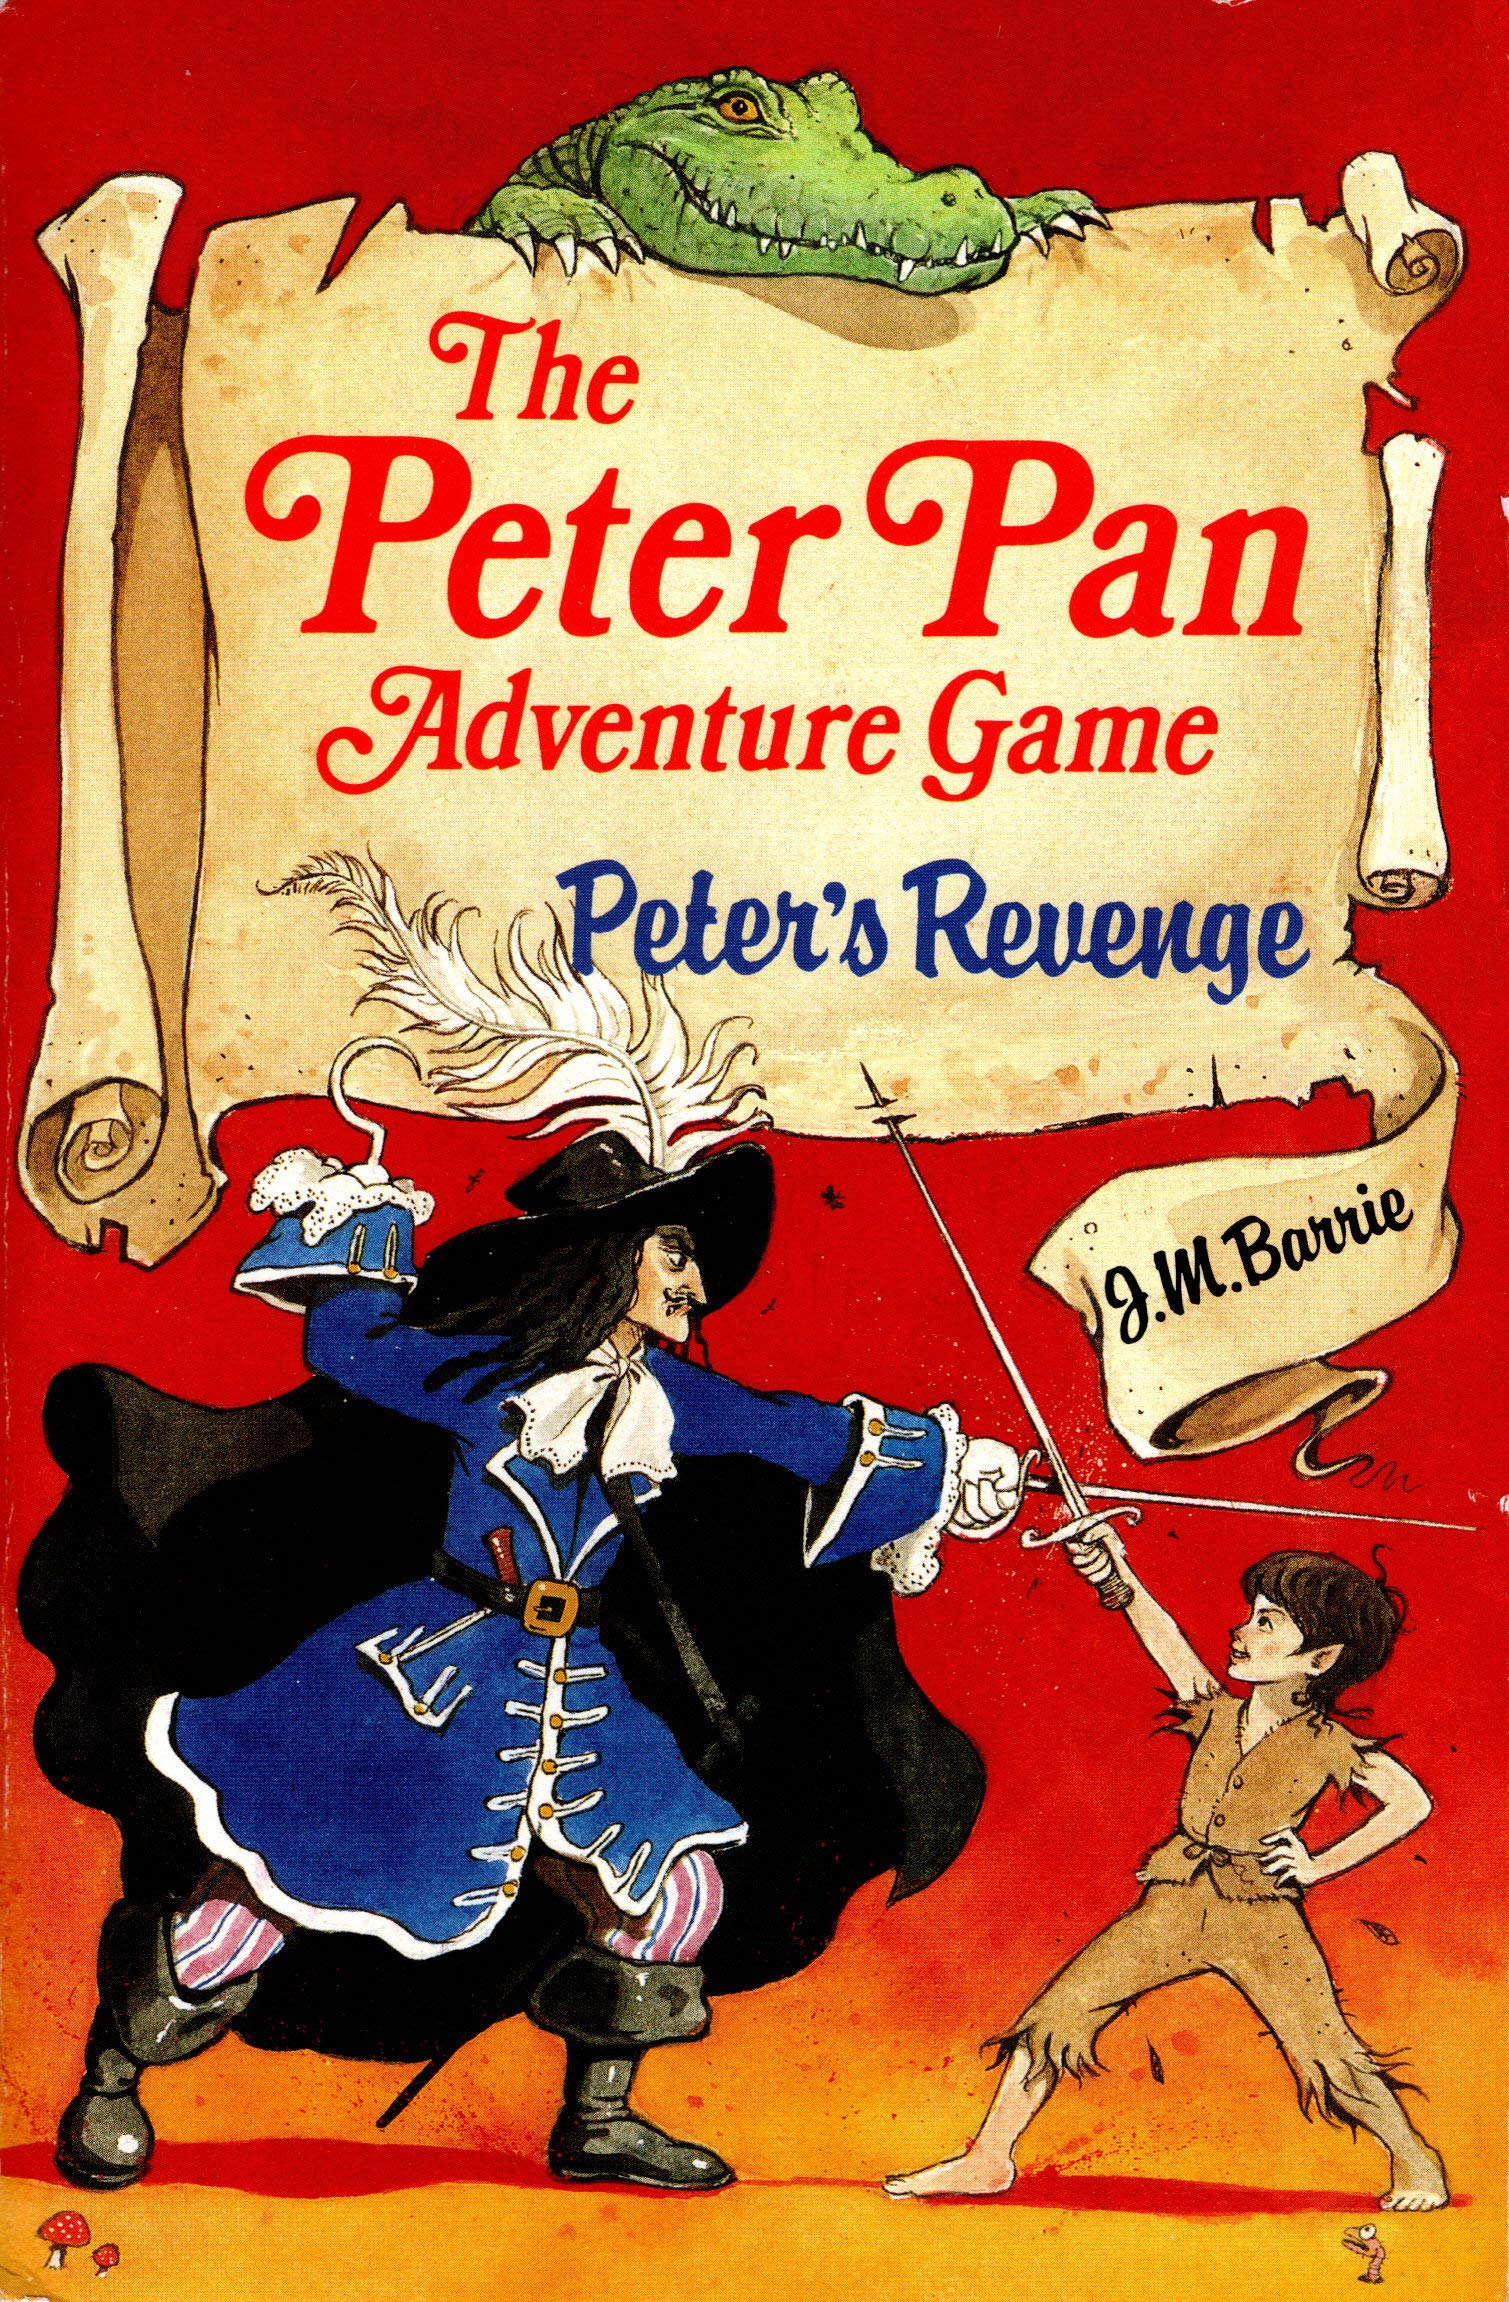 peters revenge an adventure game based on jm barries peter pan and wendy